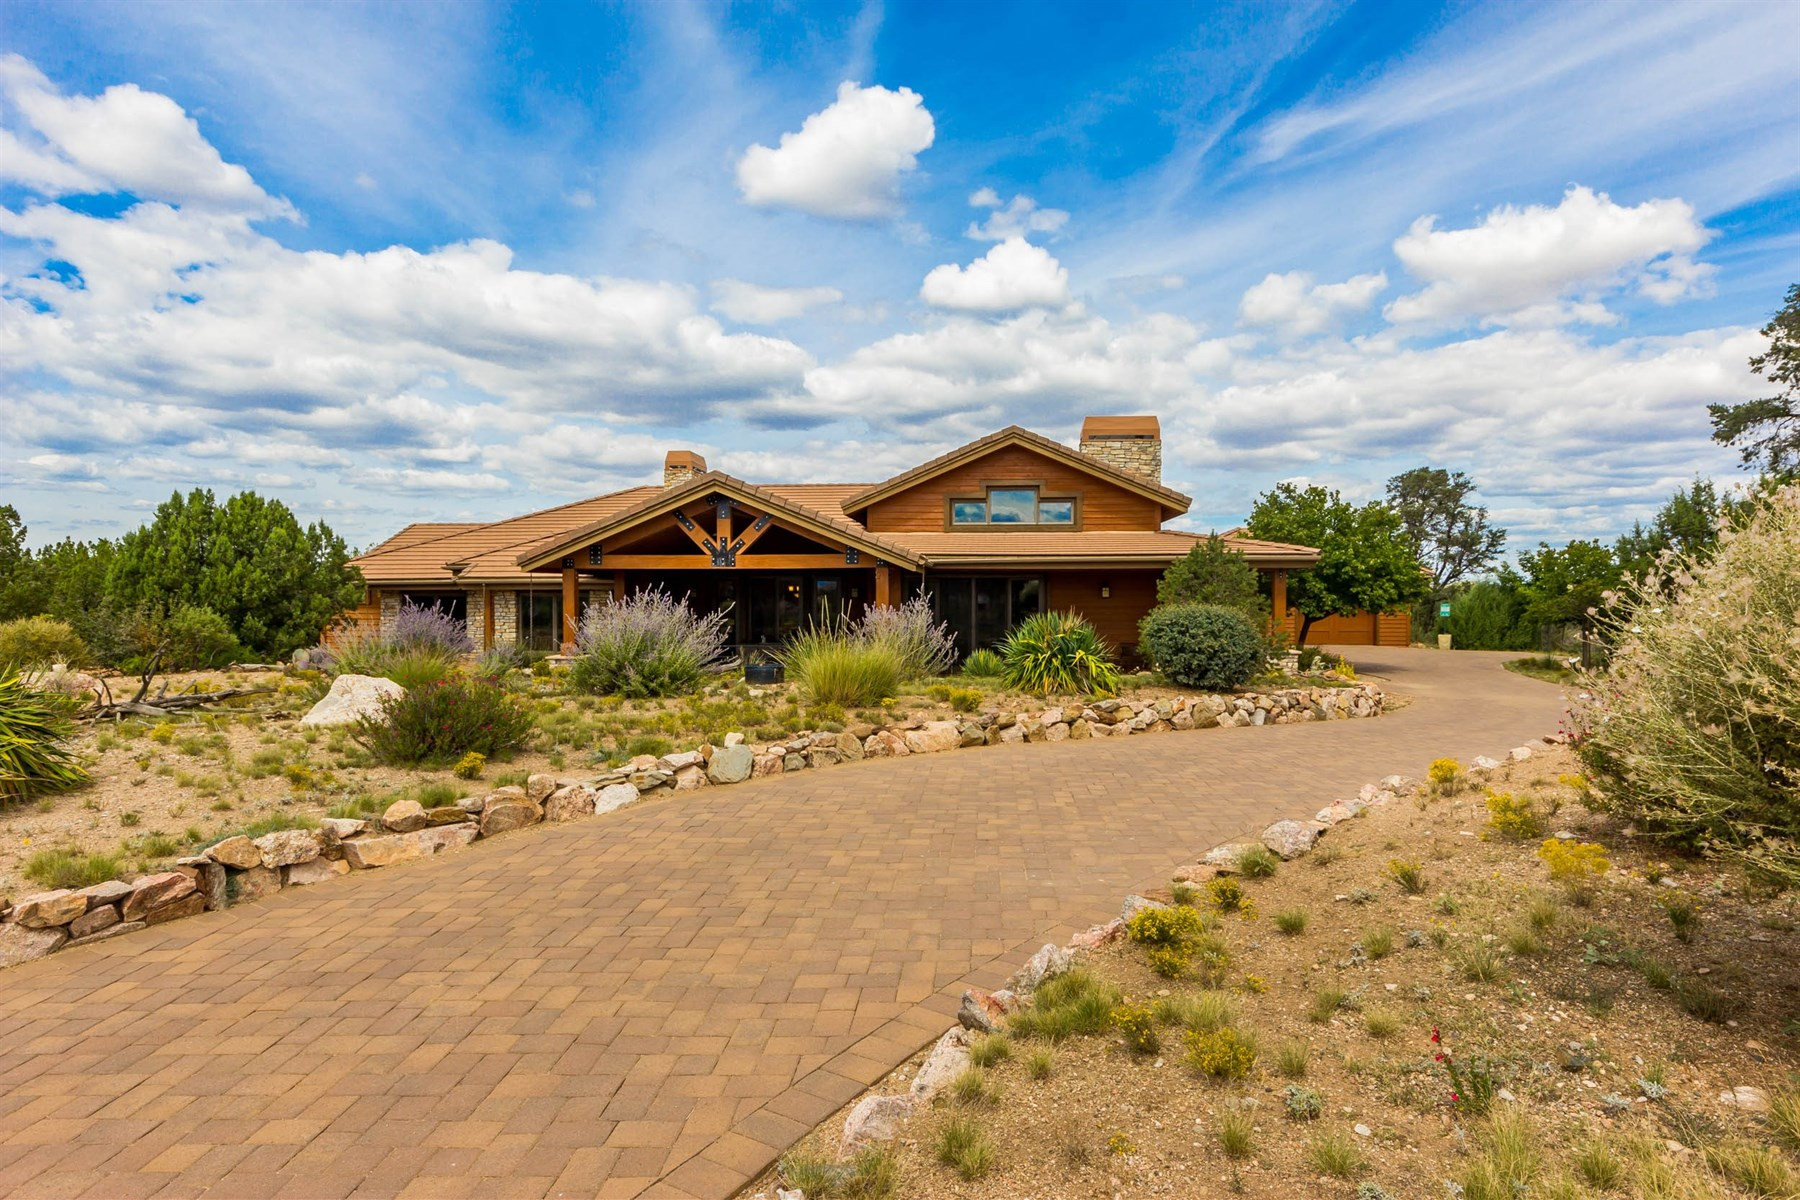 Частный односемейный дом для того Продажа на Gorgeous custom home designed to capture Granite Mountain views 5700 W Three Forks Road Prescott, Аризона, 86305 Соединенные Штаты